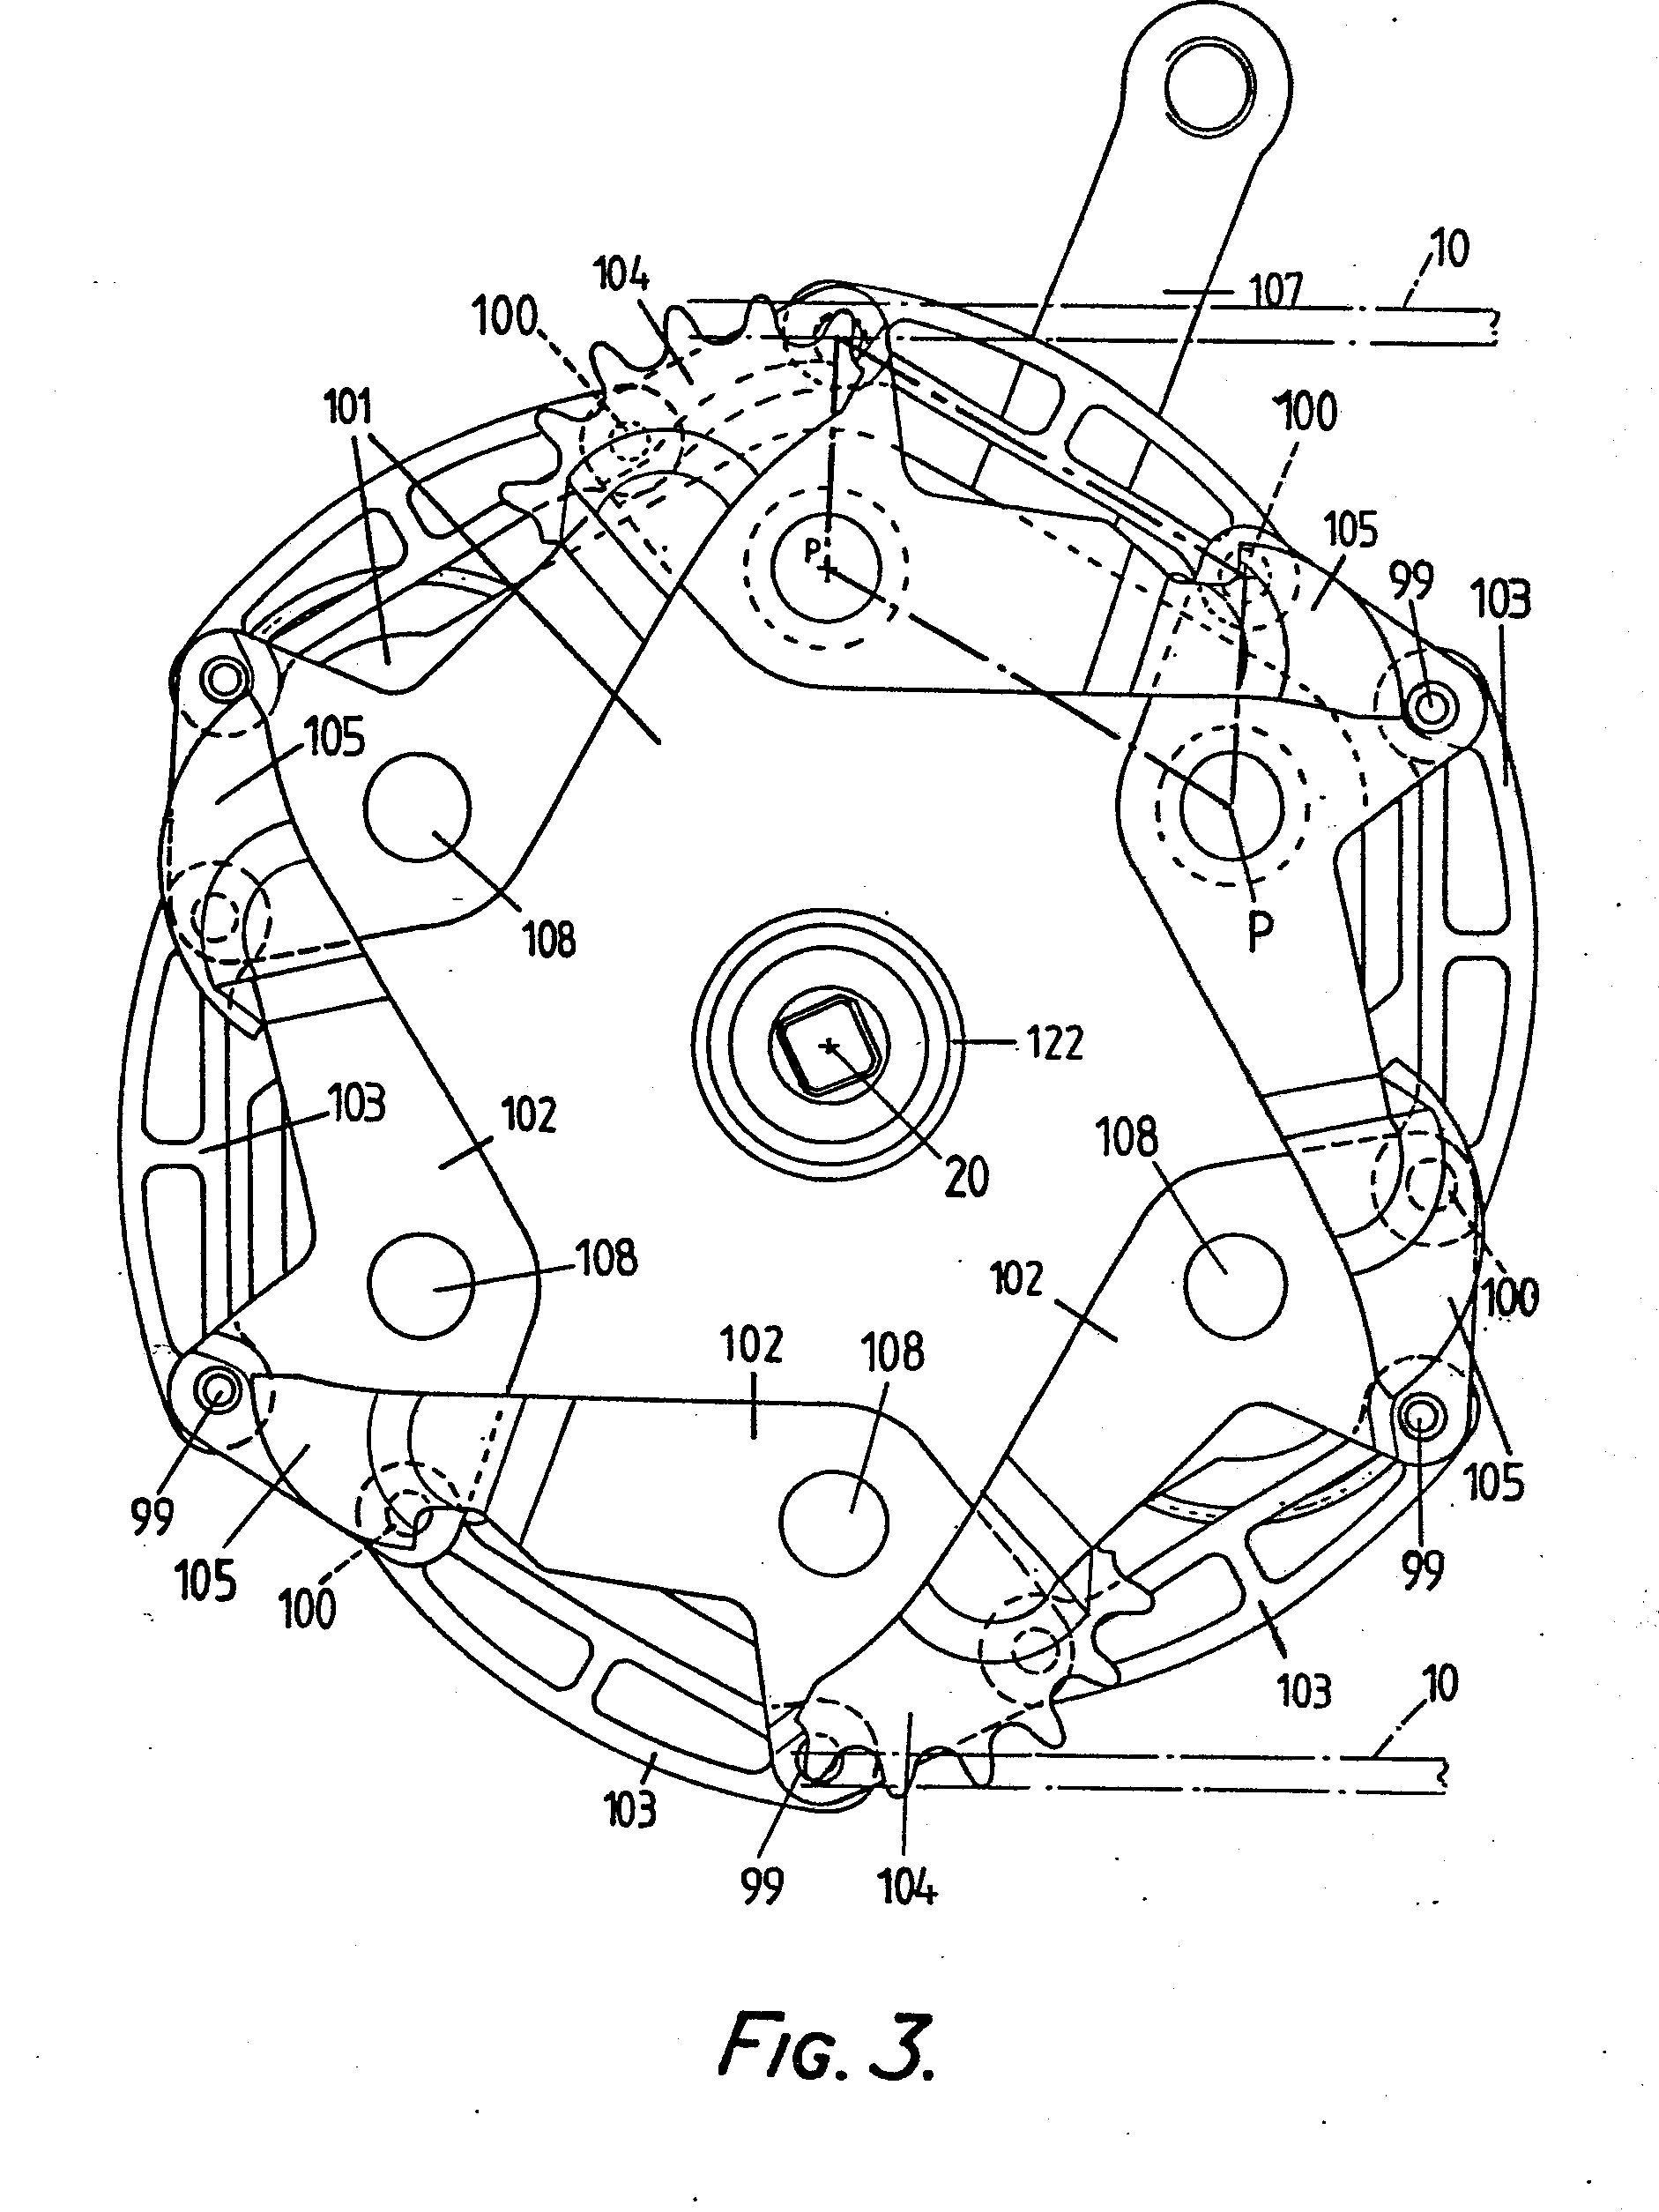 Variable Ratio Transmission Patent 0112112 Car Brakes Diagram Displaying 15 Images For Toolbar